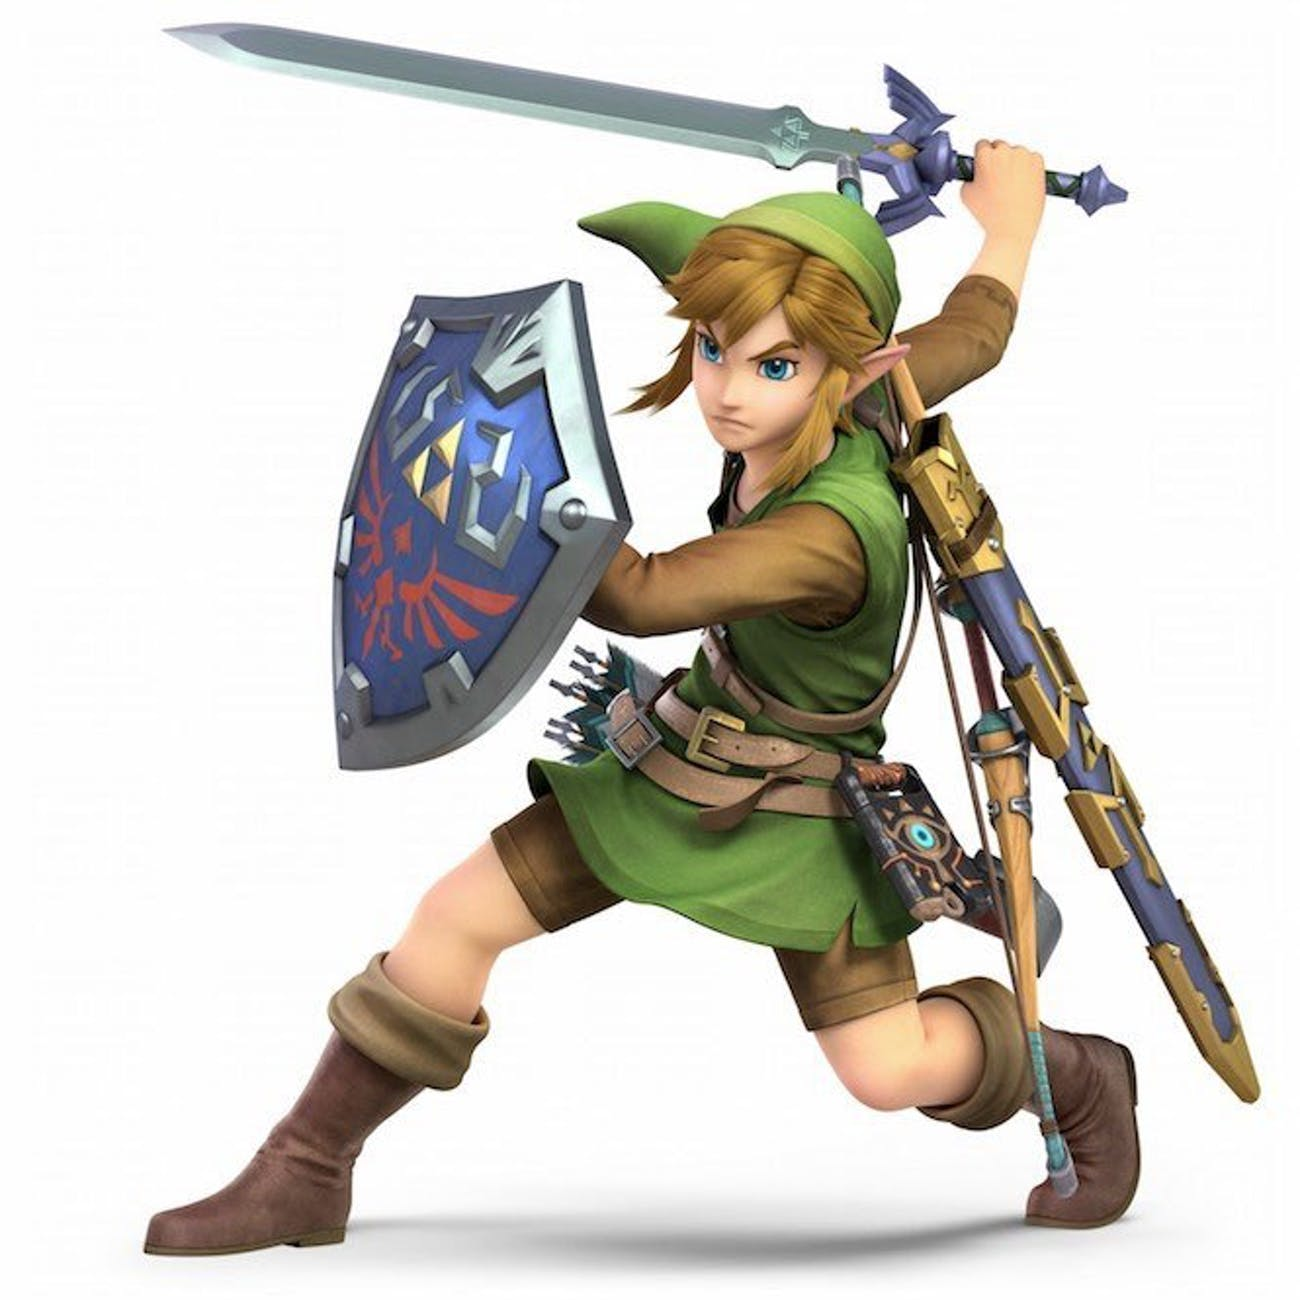 Check out Link's new look in 'Super Smash Bros. Ultimate'